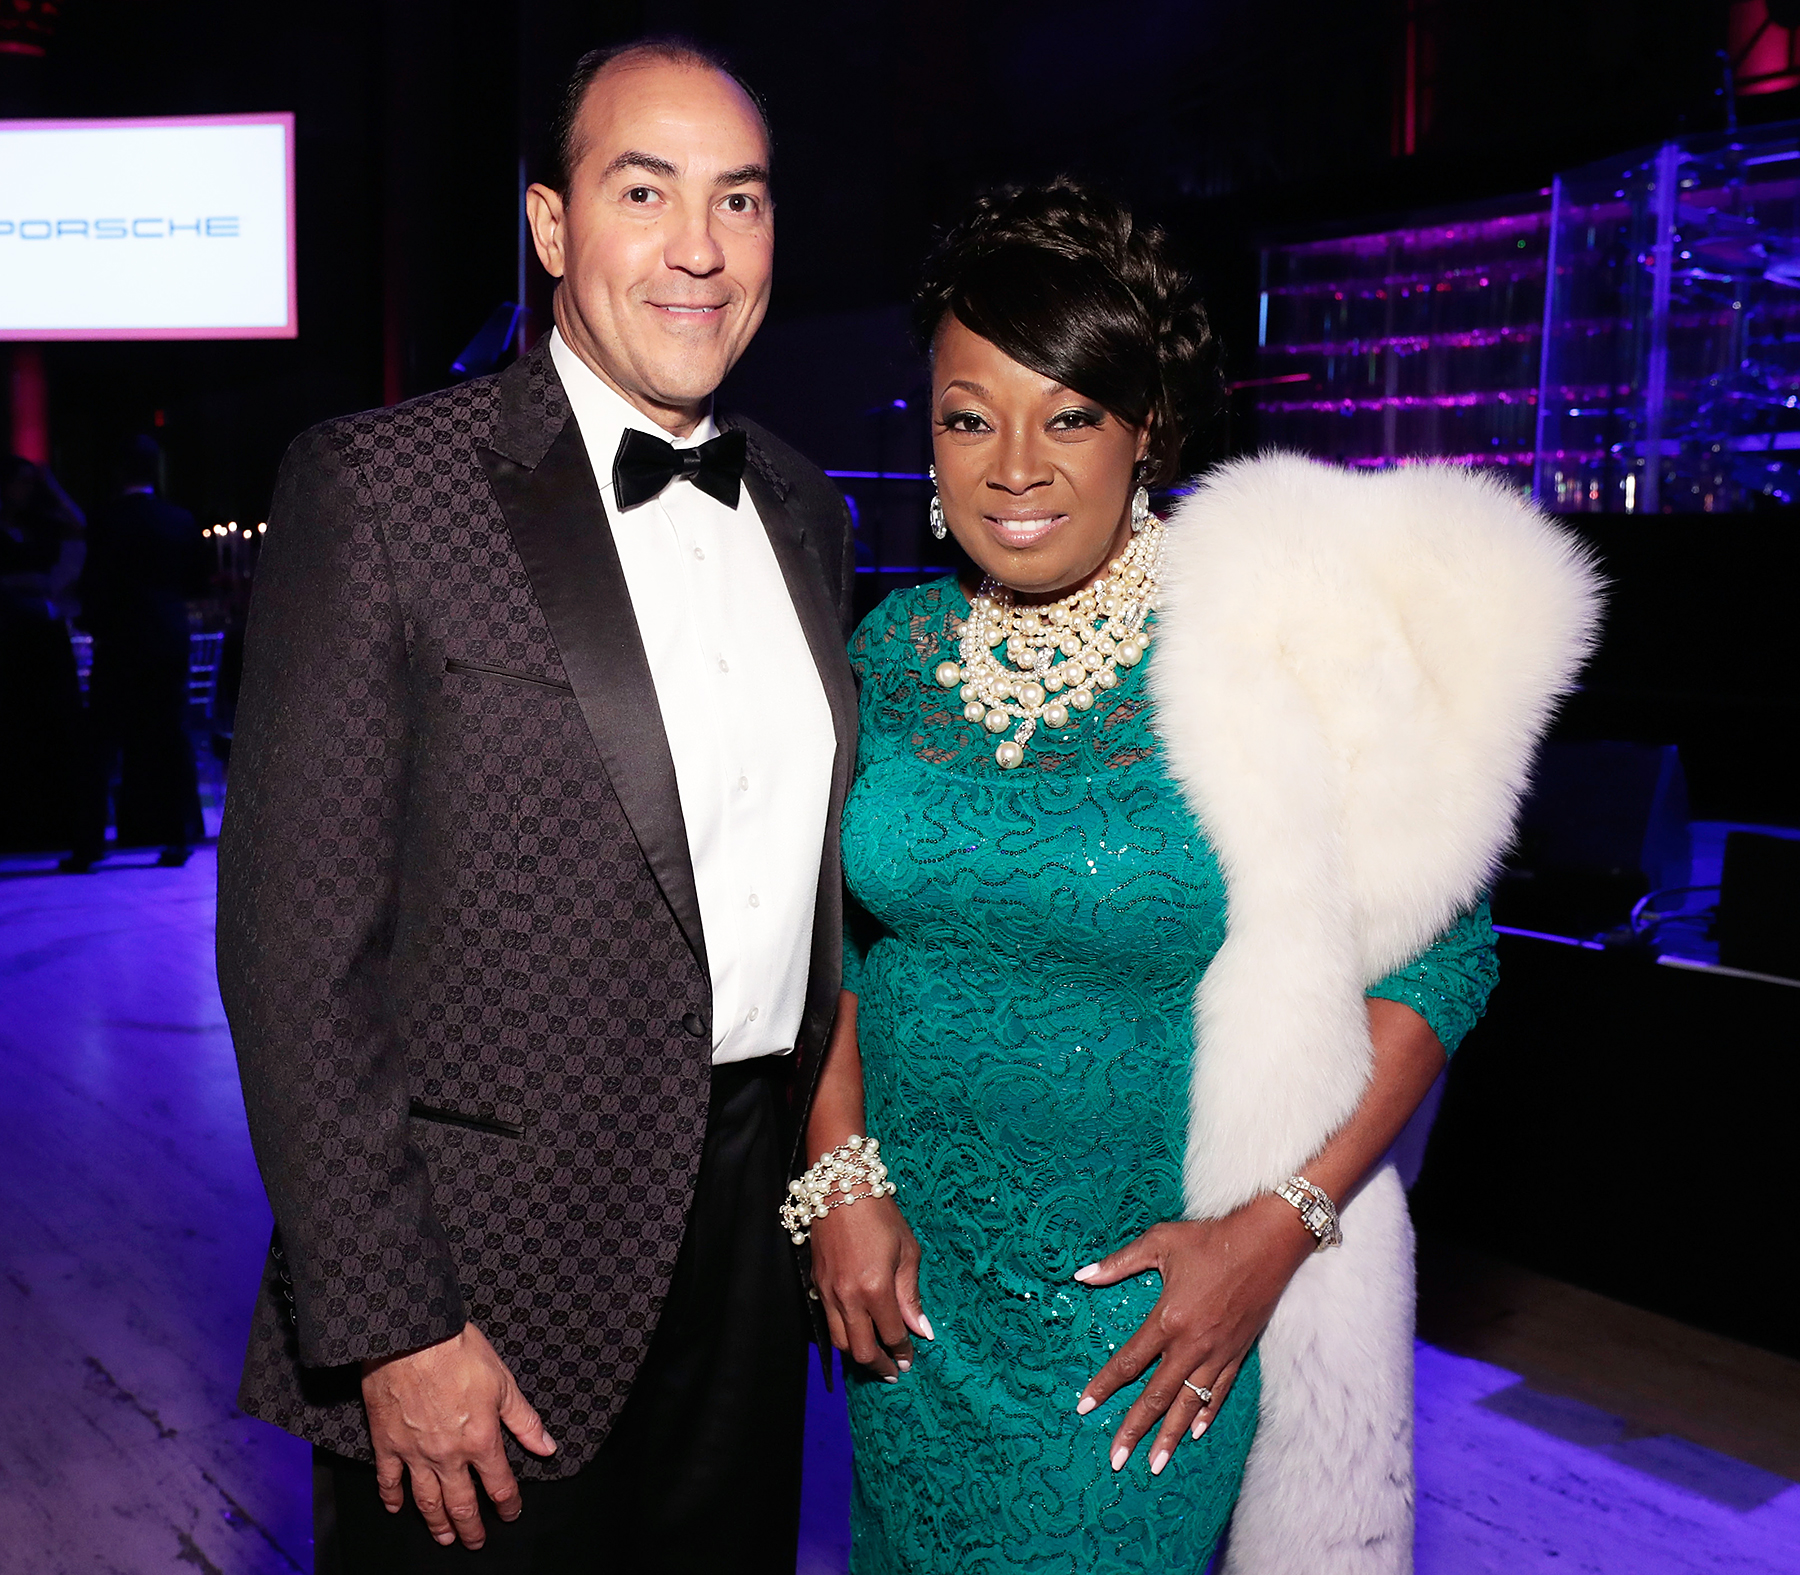 Star Jones Marries Ricardo Lugo on a Cruise Ship in the Bahamas